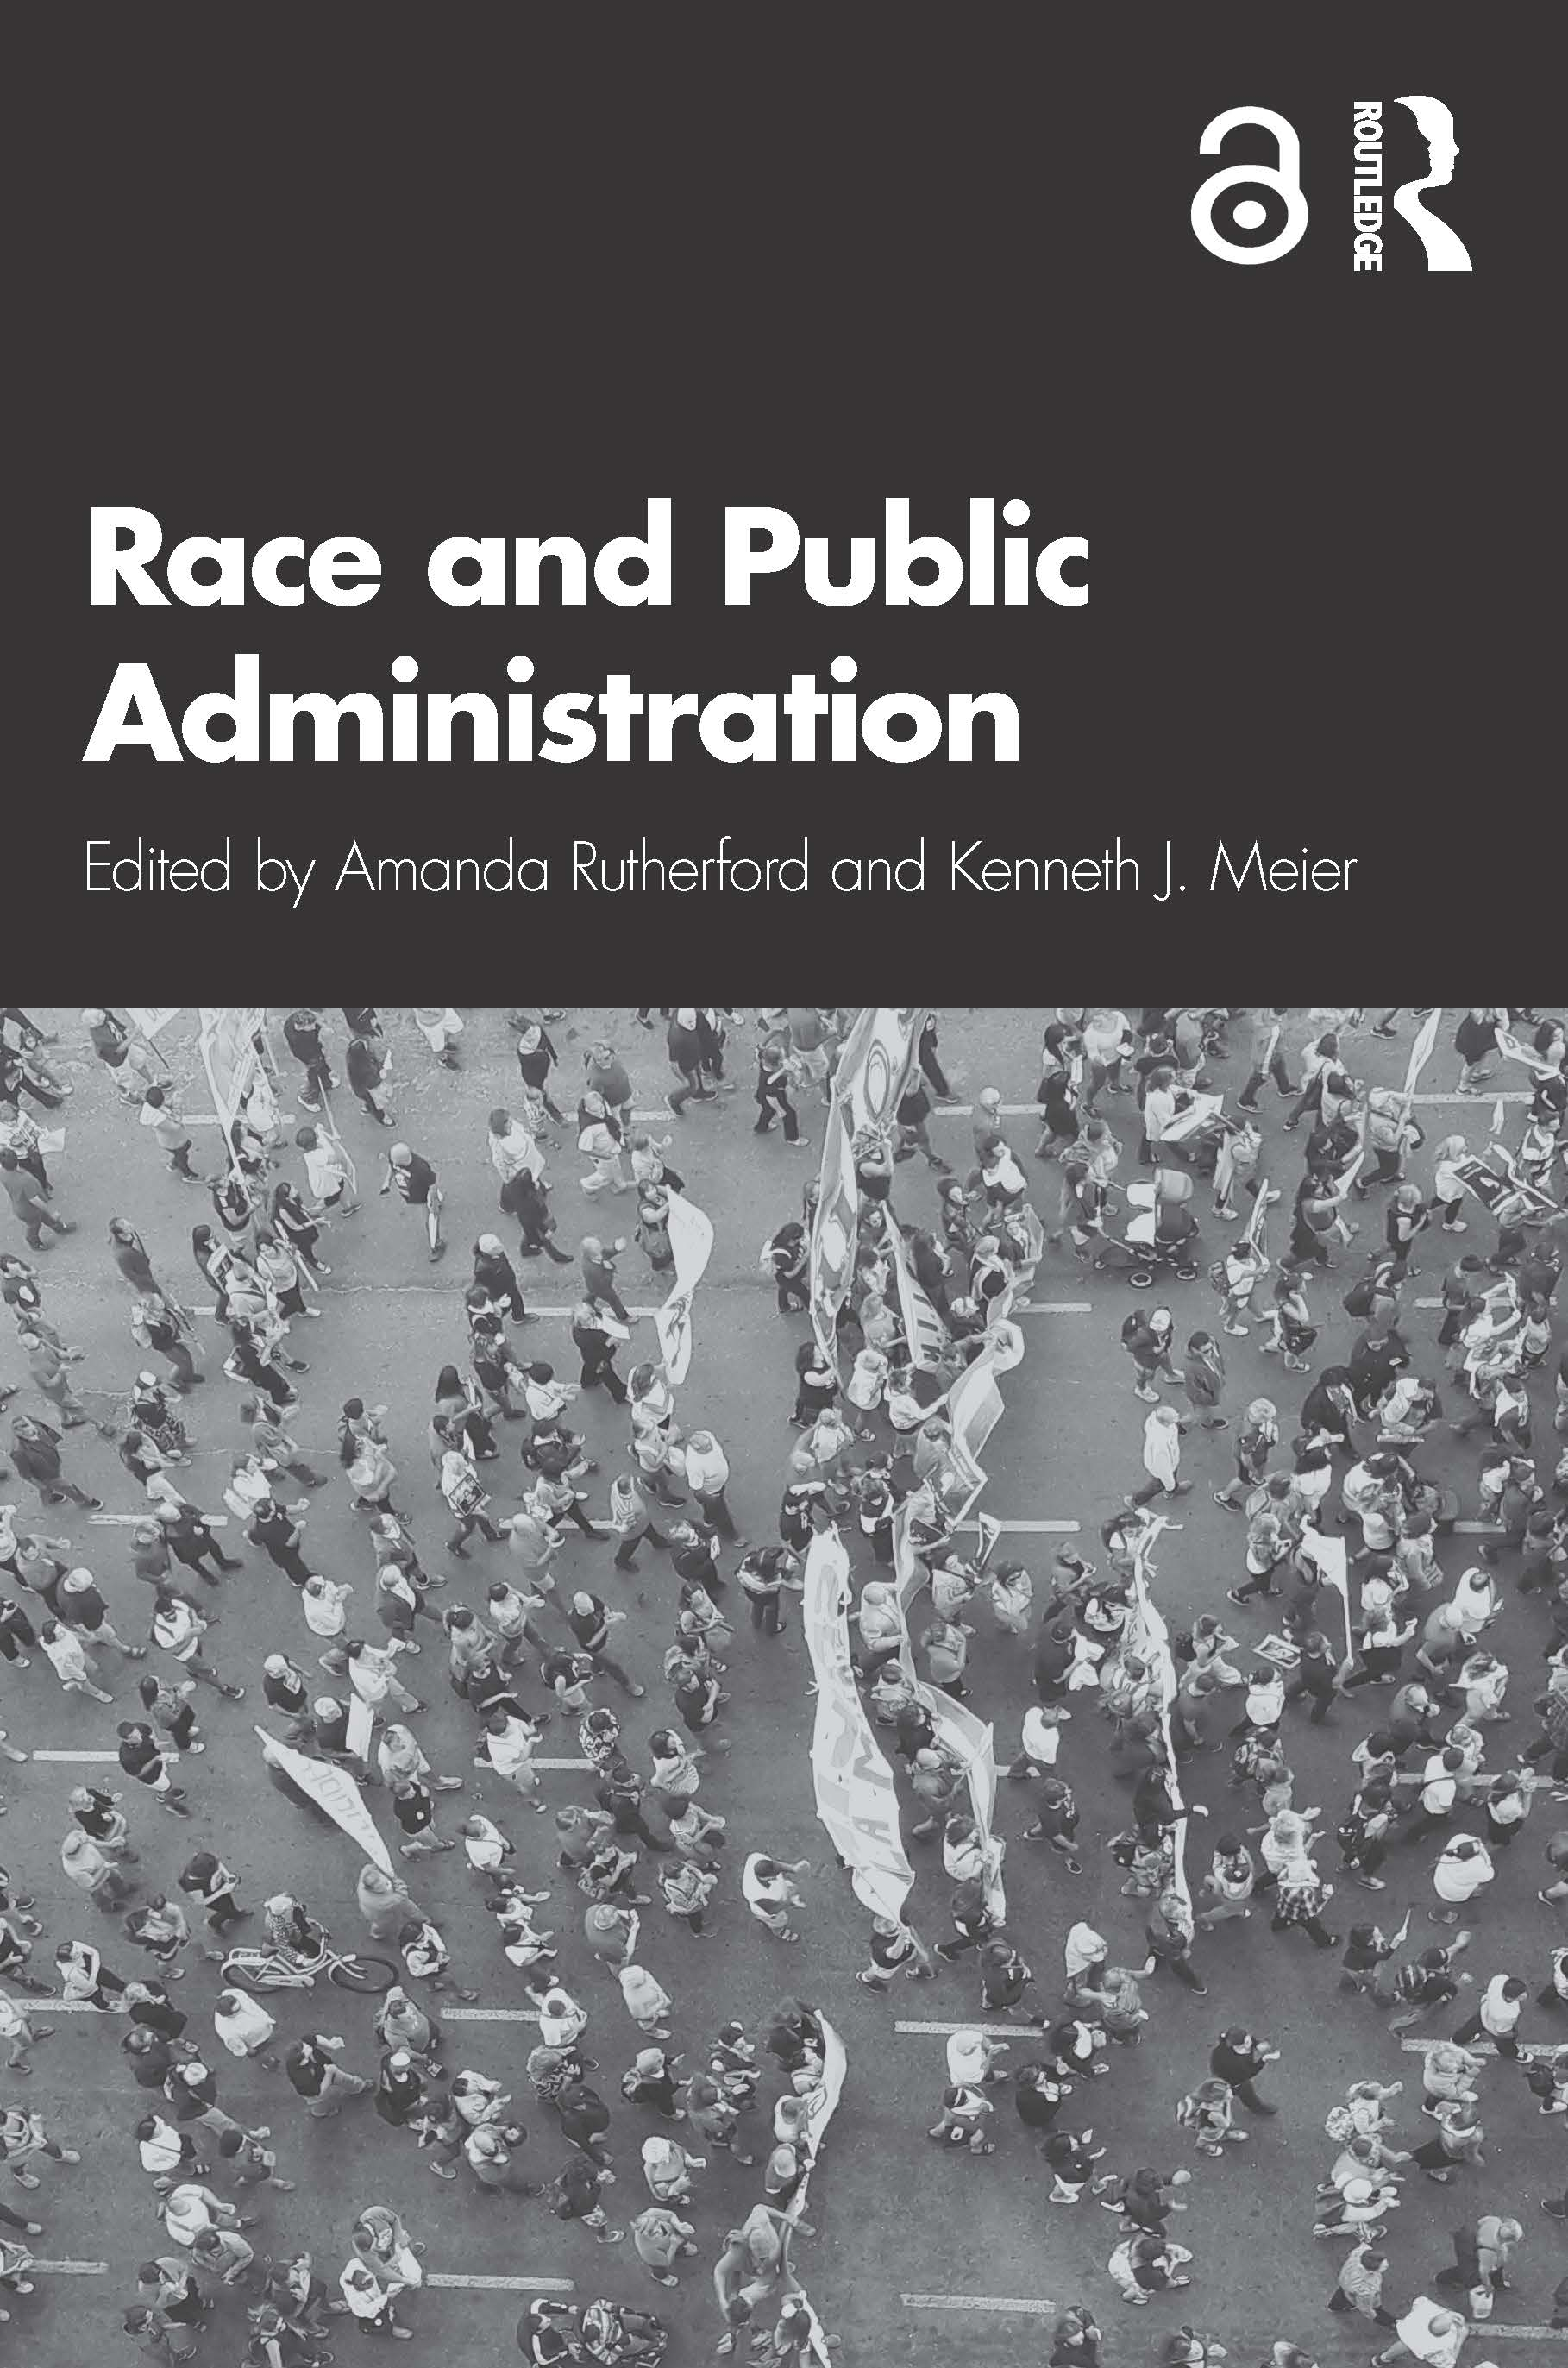 Race and Public Administration